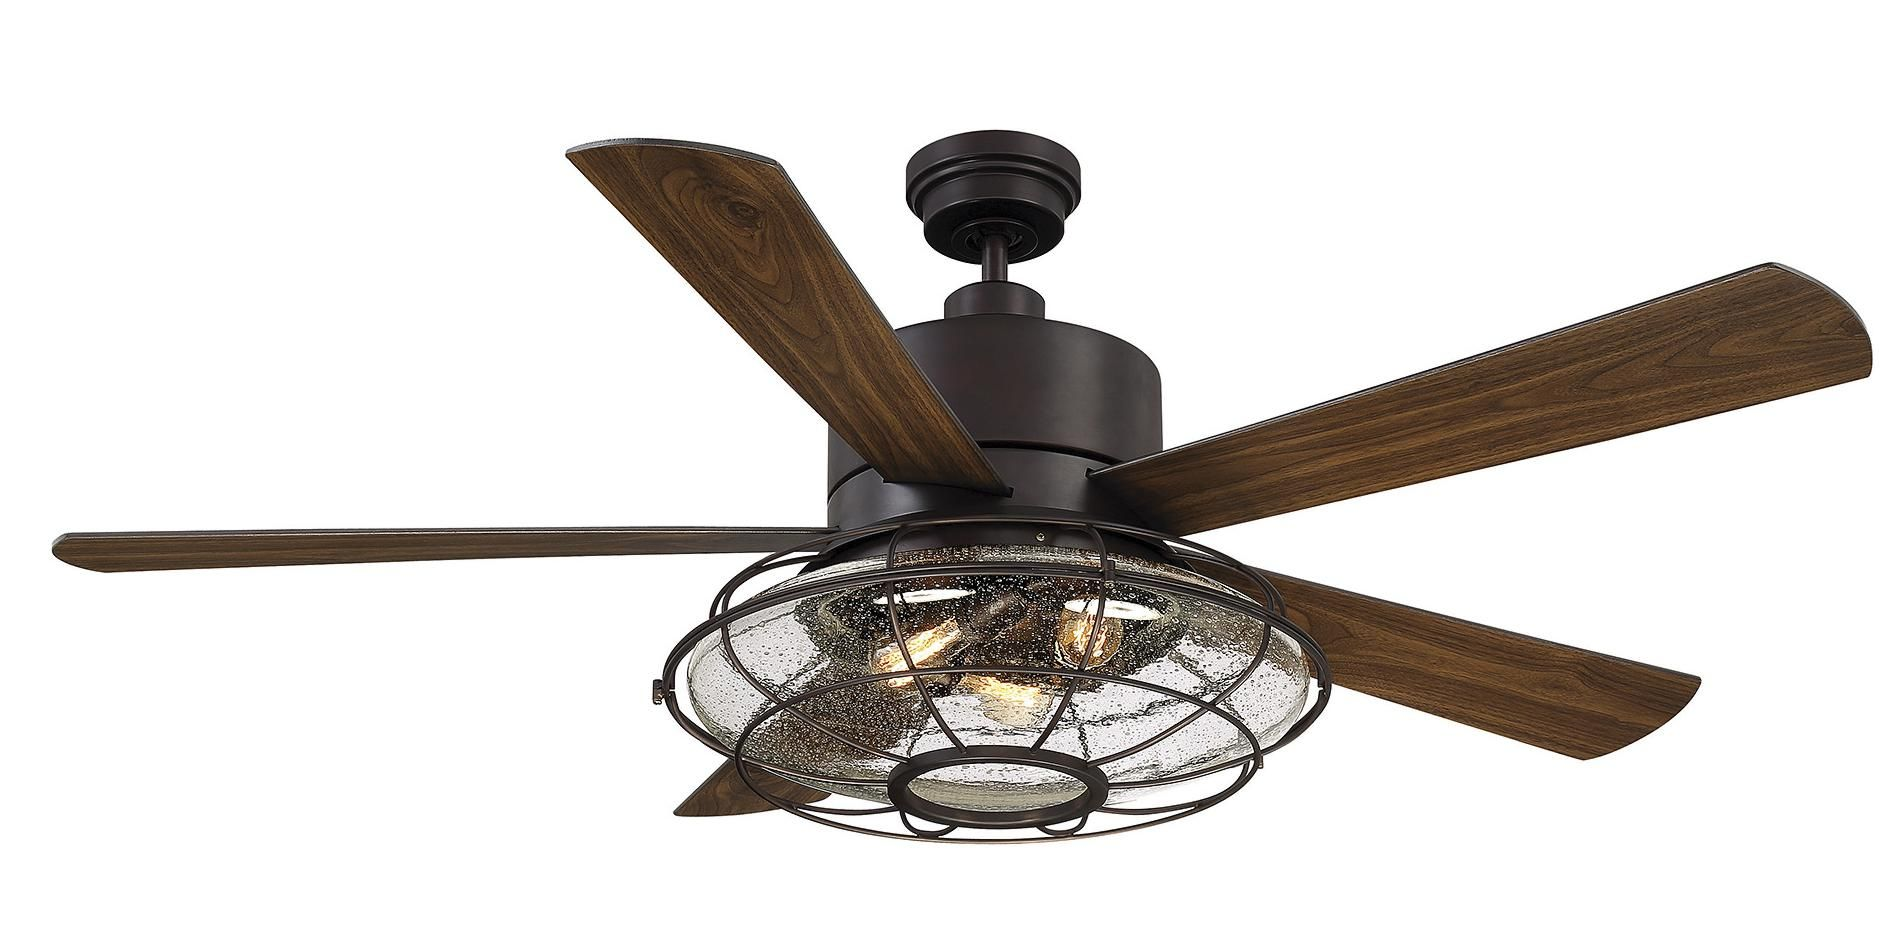 Savoy house connell 56 578 5wa 13 airflow rating 5120 cfm cubic explore ceiling fans with lights fan with light and more aloadofball Images